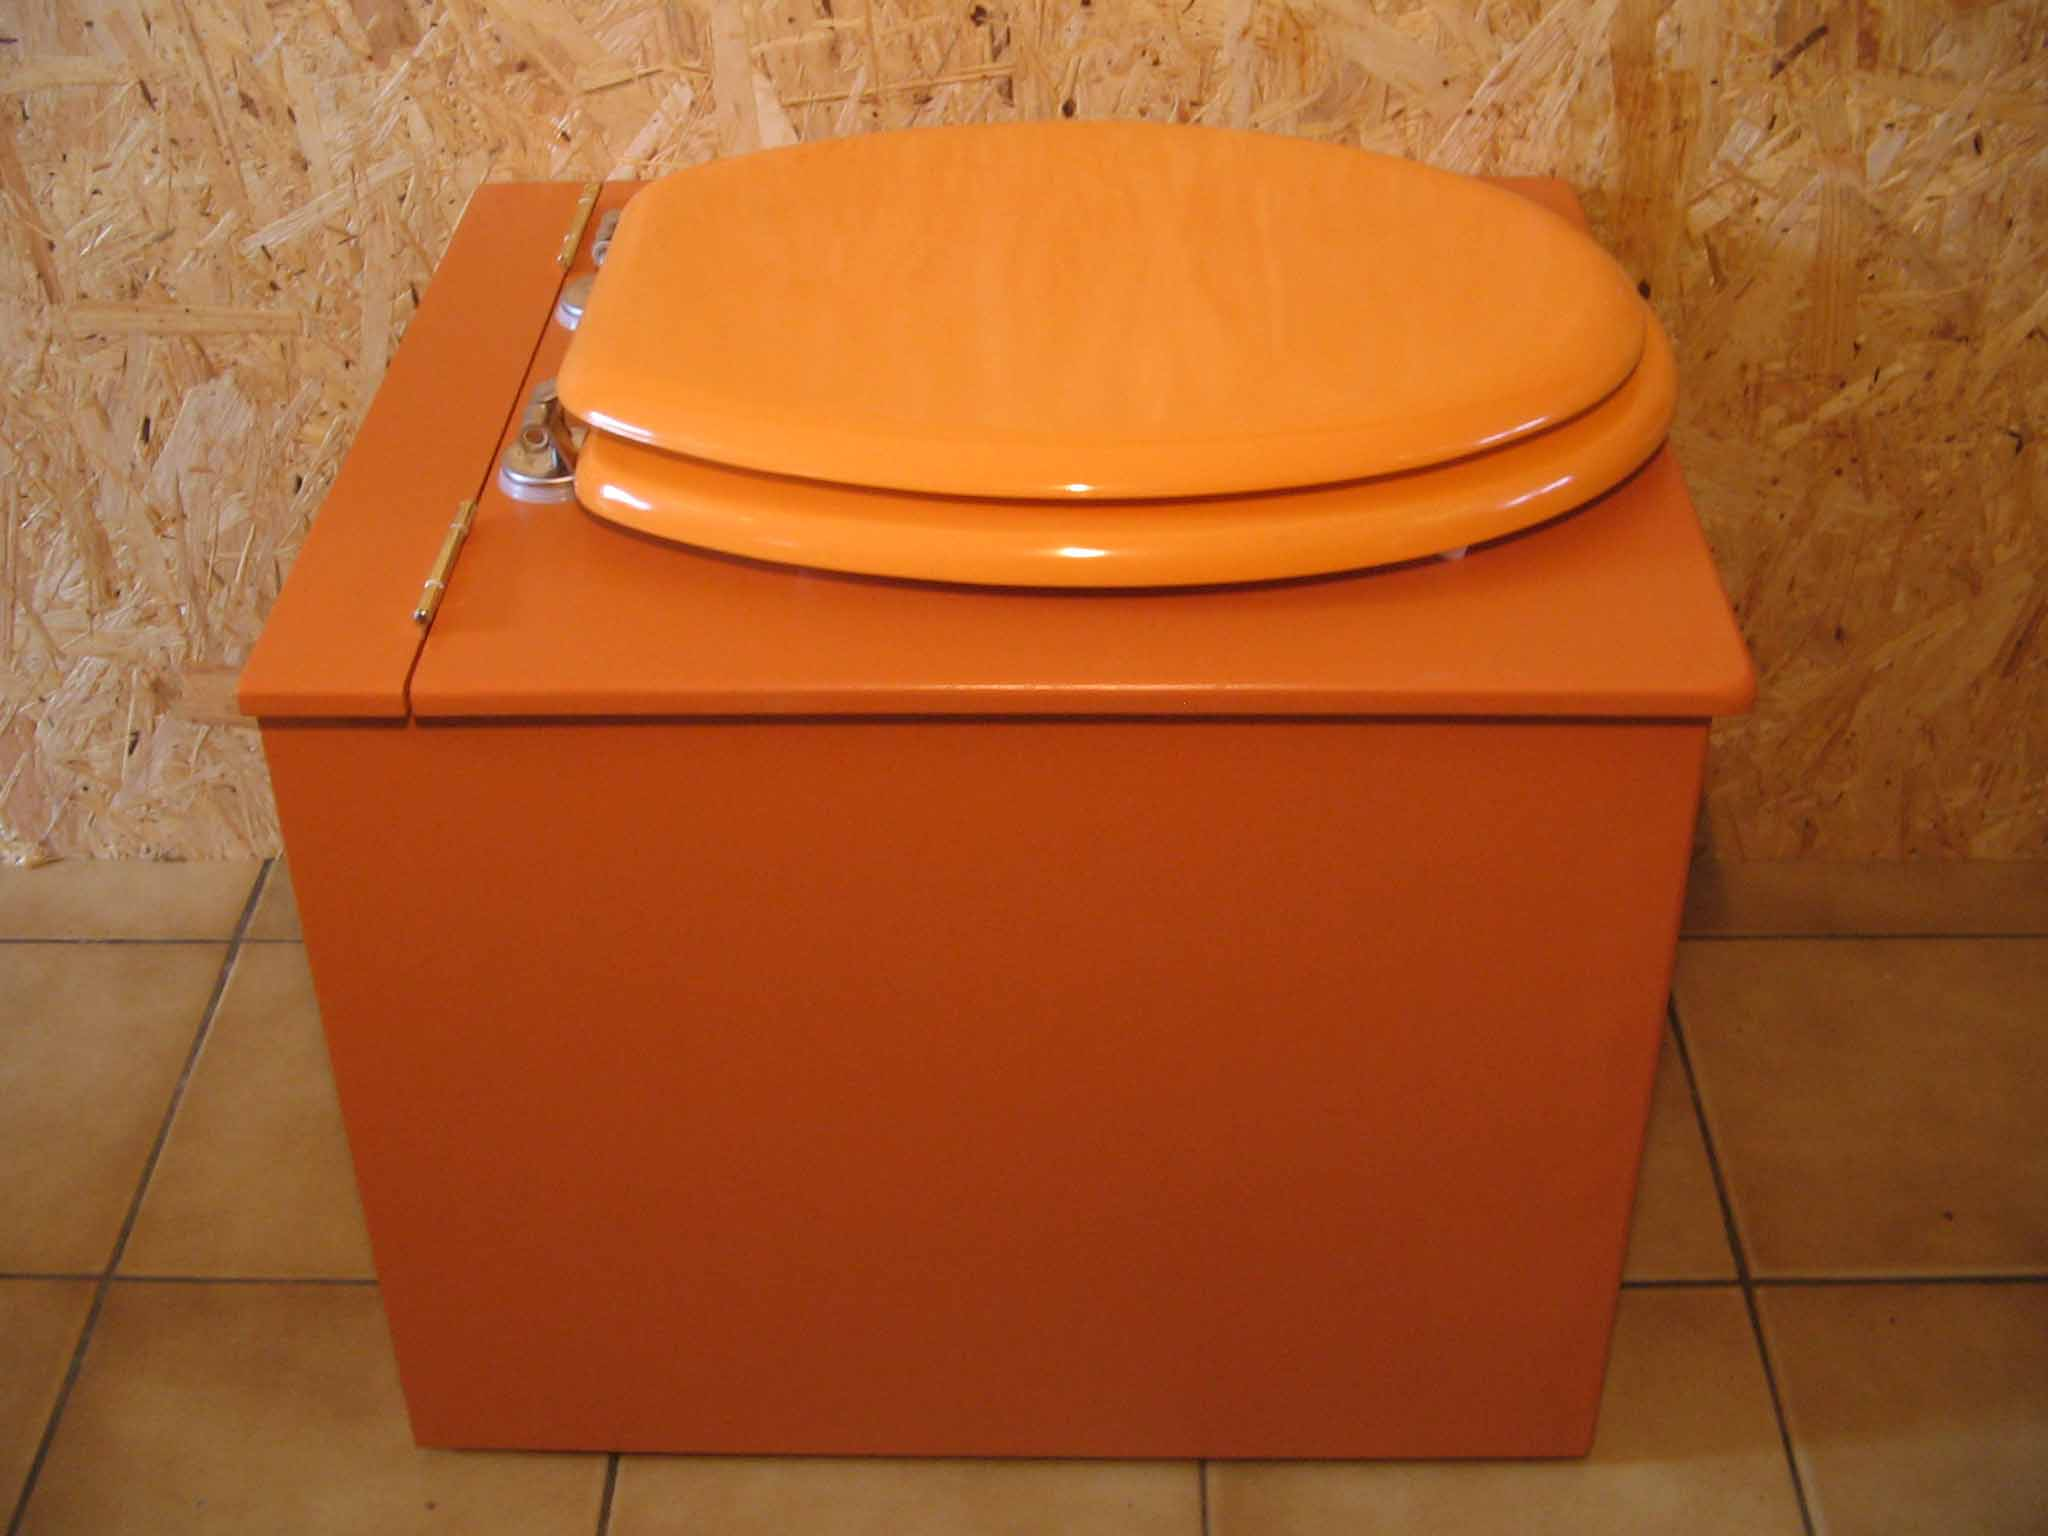 toilette sèche originale orange